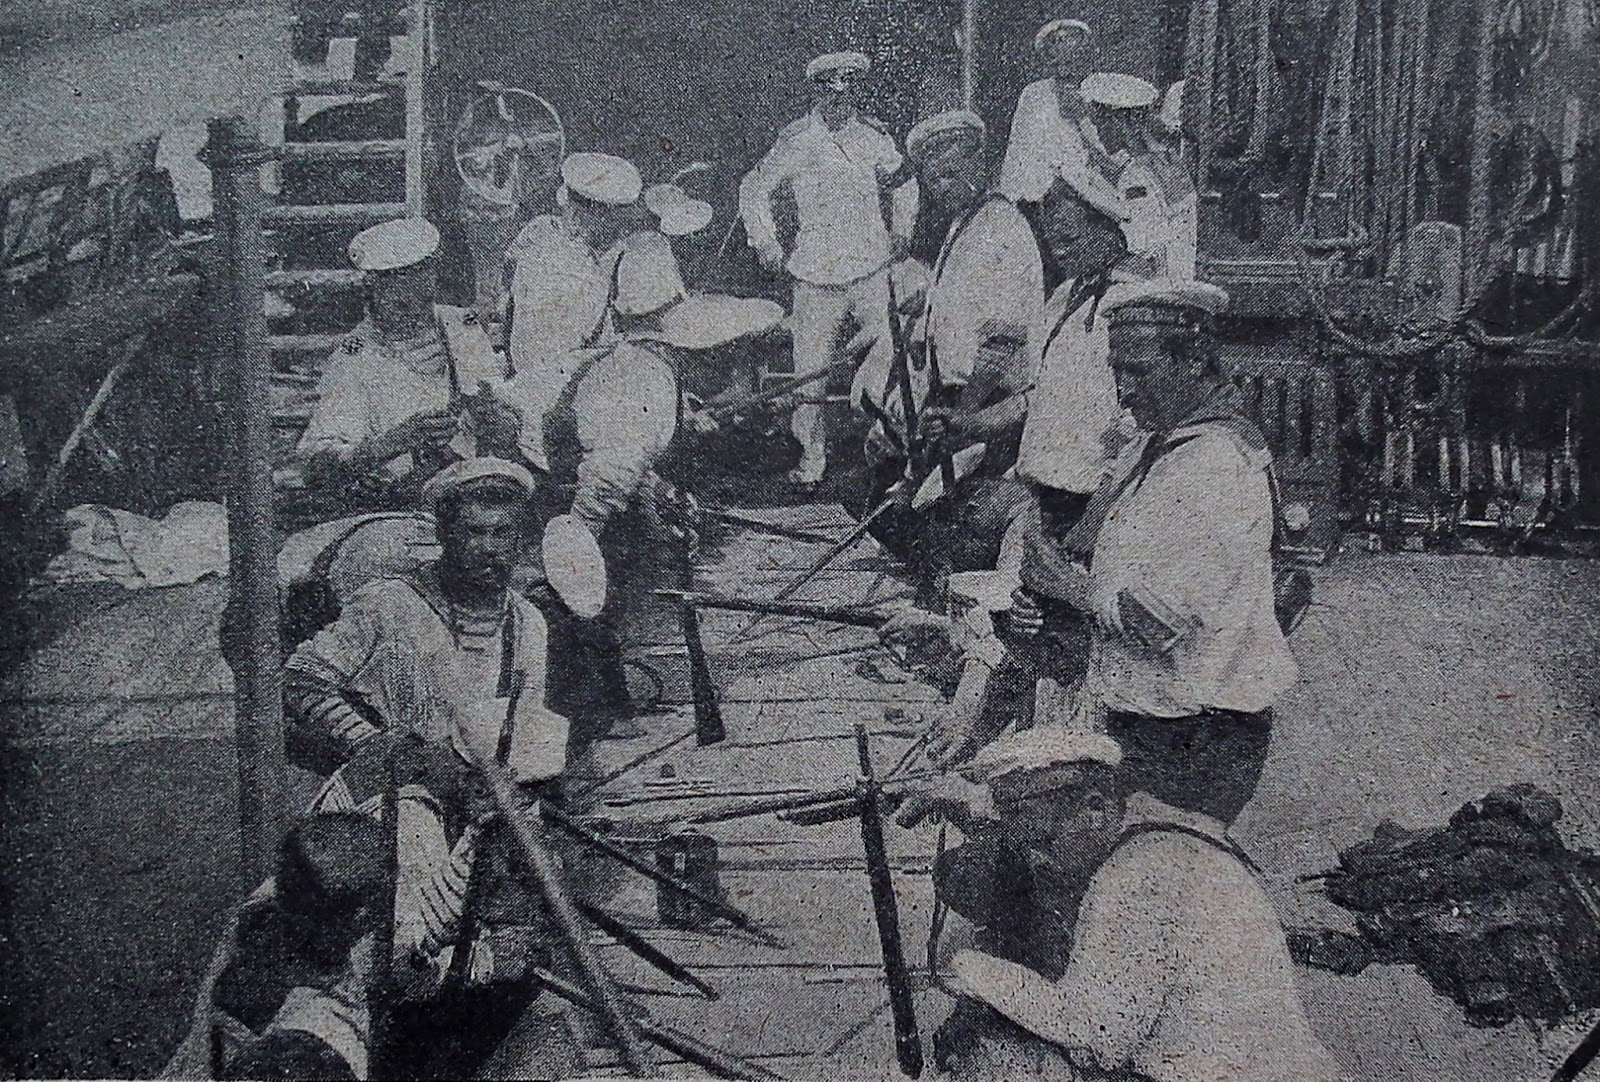 an overview of the infamous russo japanese war between 1904 and 1905 Russia against japan, 1904-05: the russo-japanese war of 1904 is nearly forgotten today the russian reserves mutinied on their way home during the 1905 uprising.